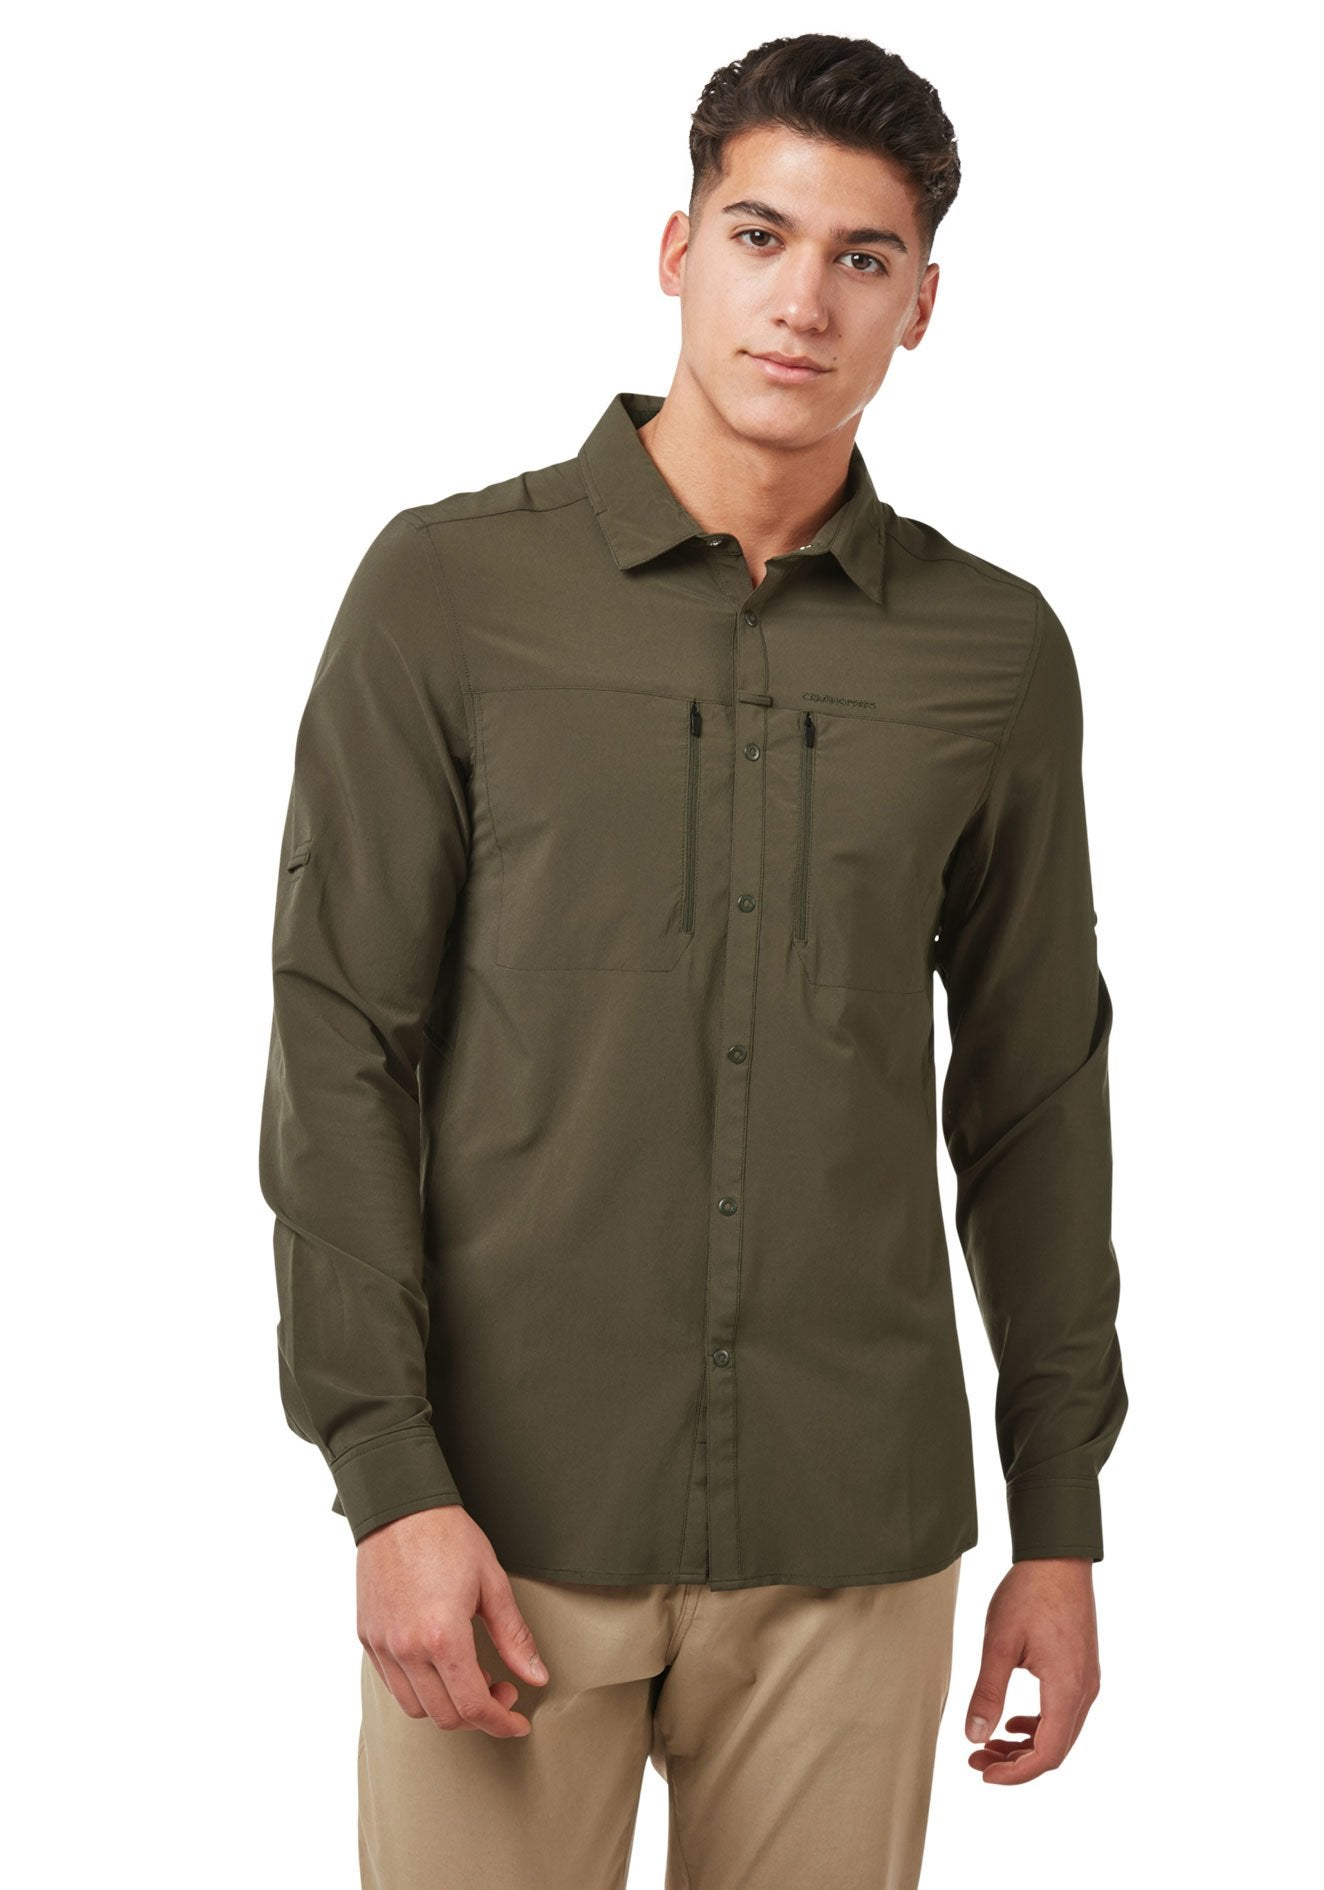 Man wears NosiLife PRO IV Long Sleeved Shirt by Craghoppers